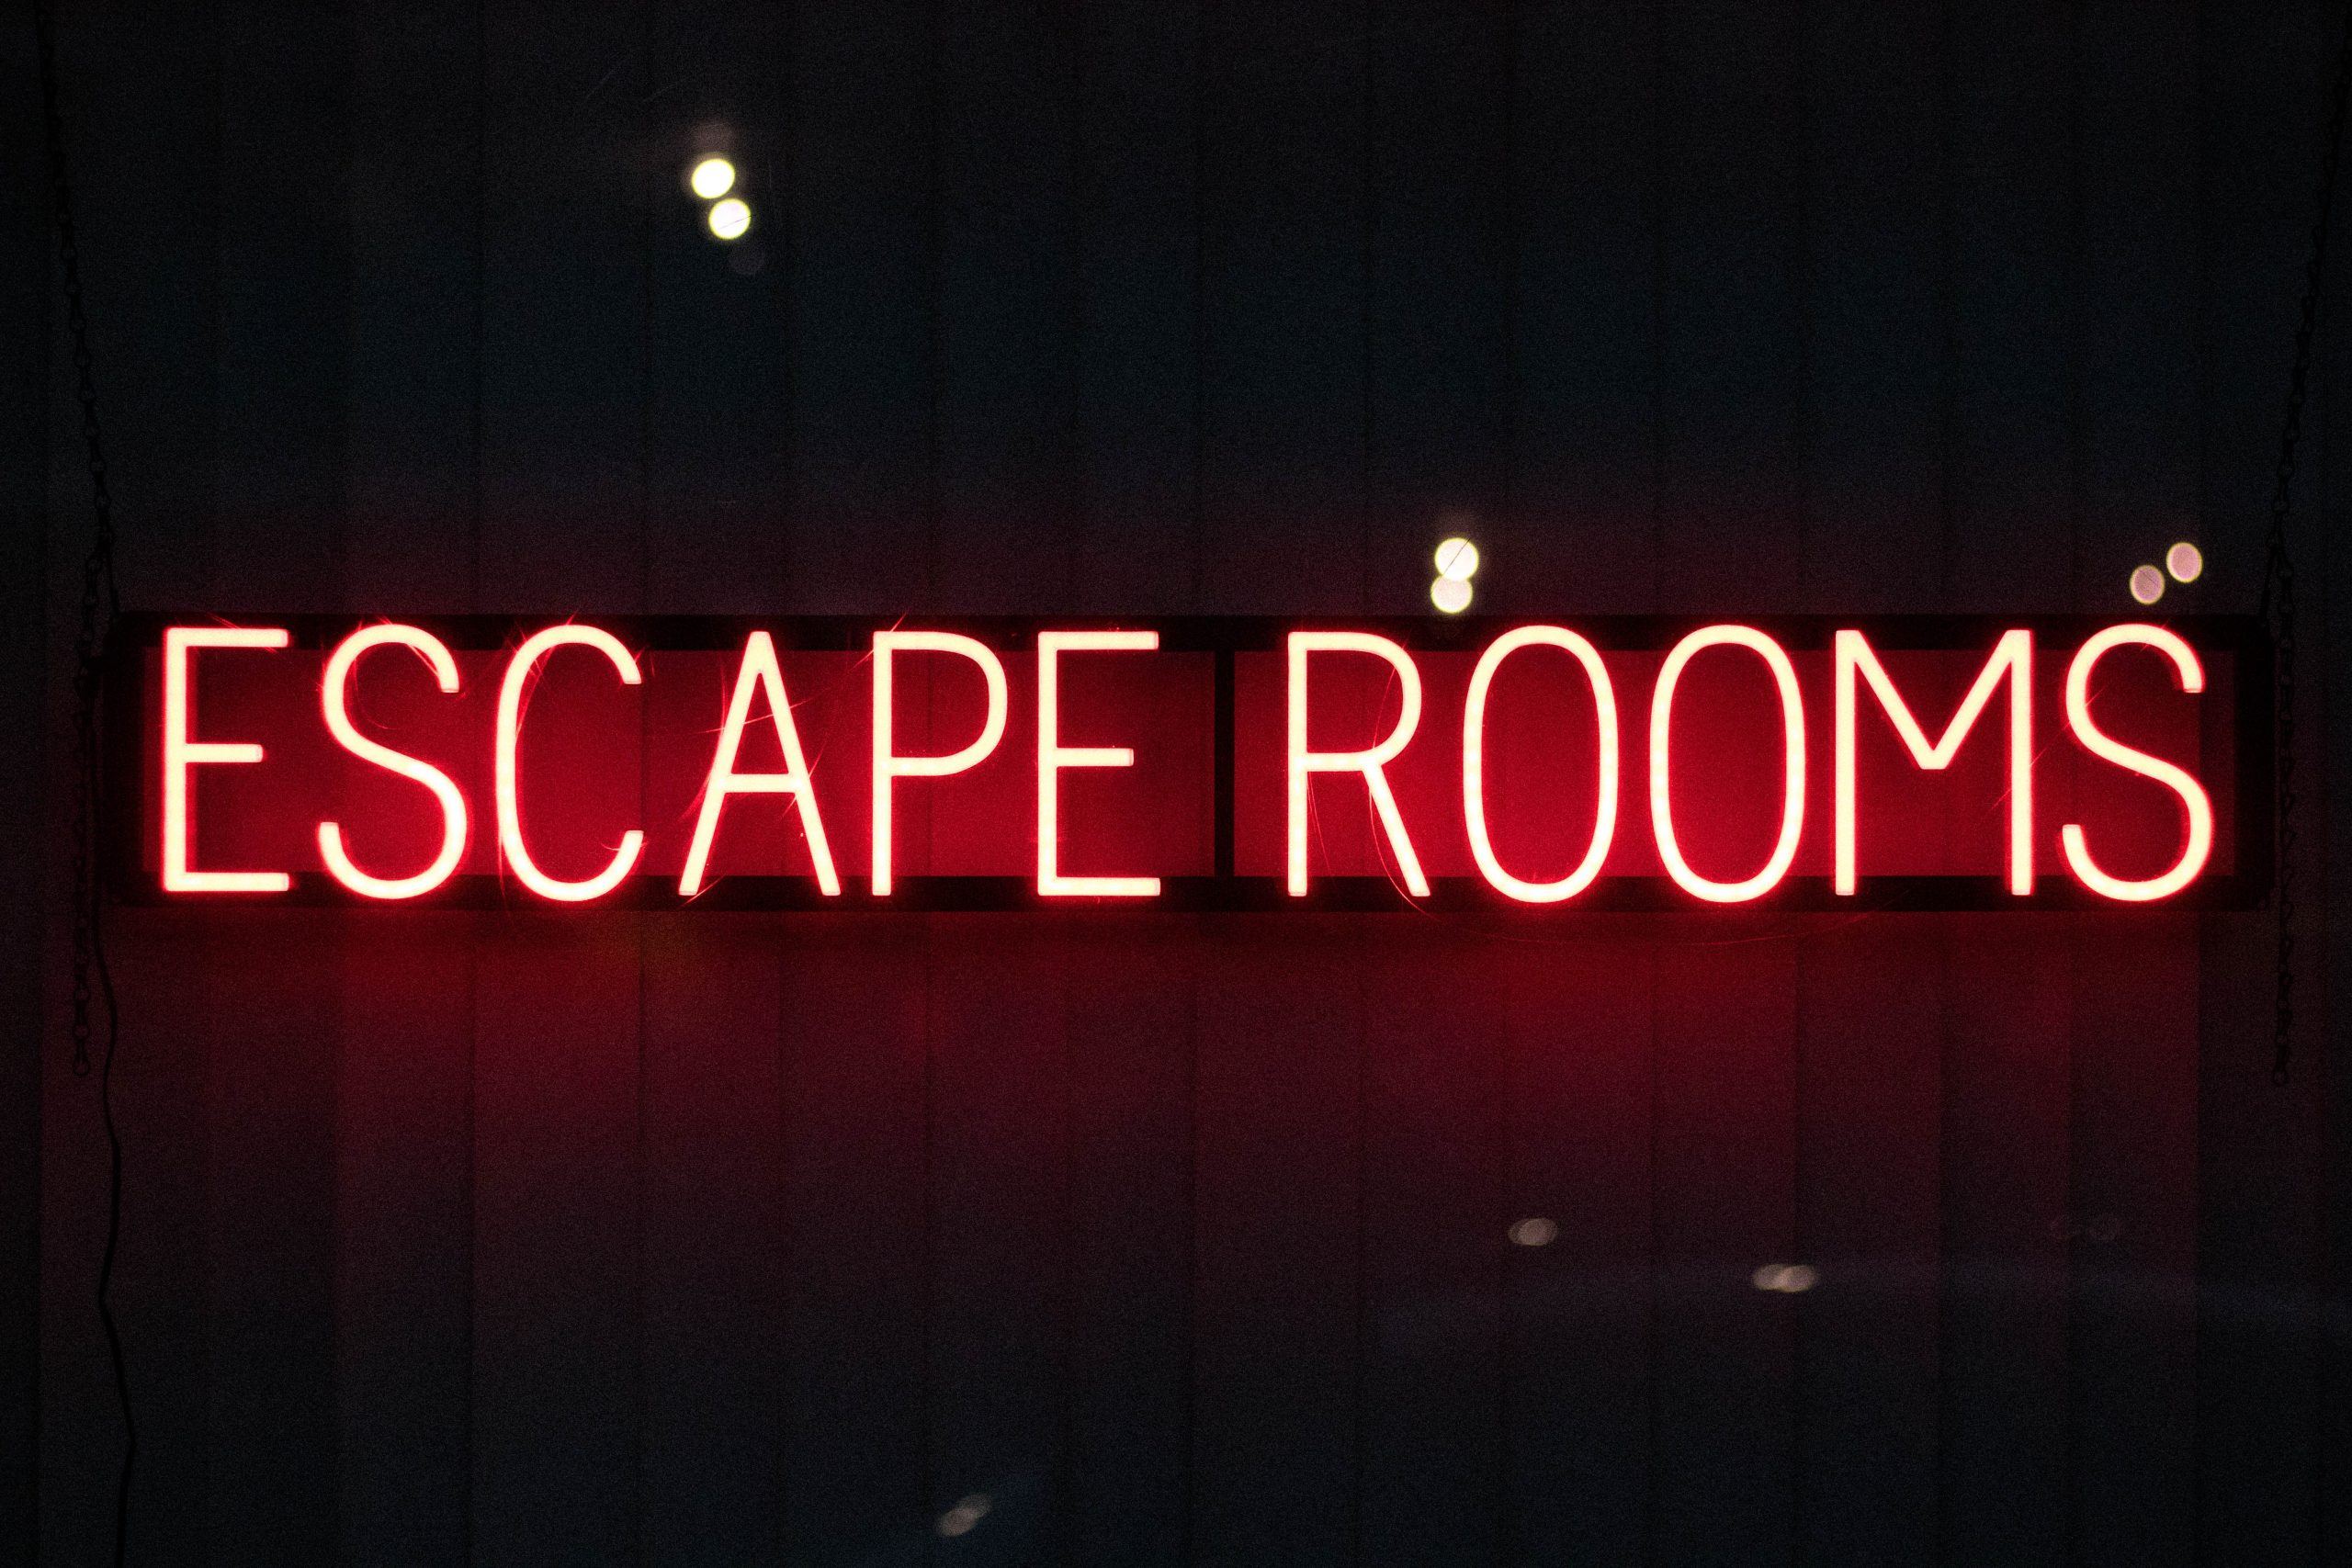 Reasons Why Your Child Will Find Escape Rooms Exciting